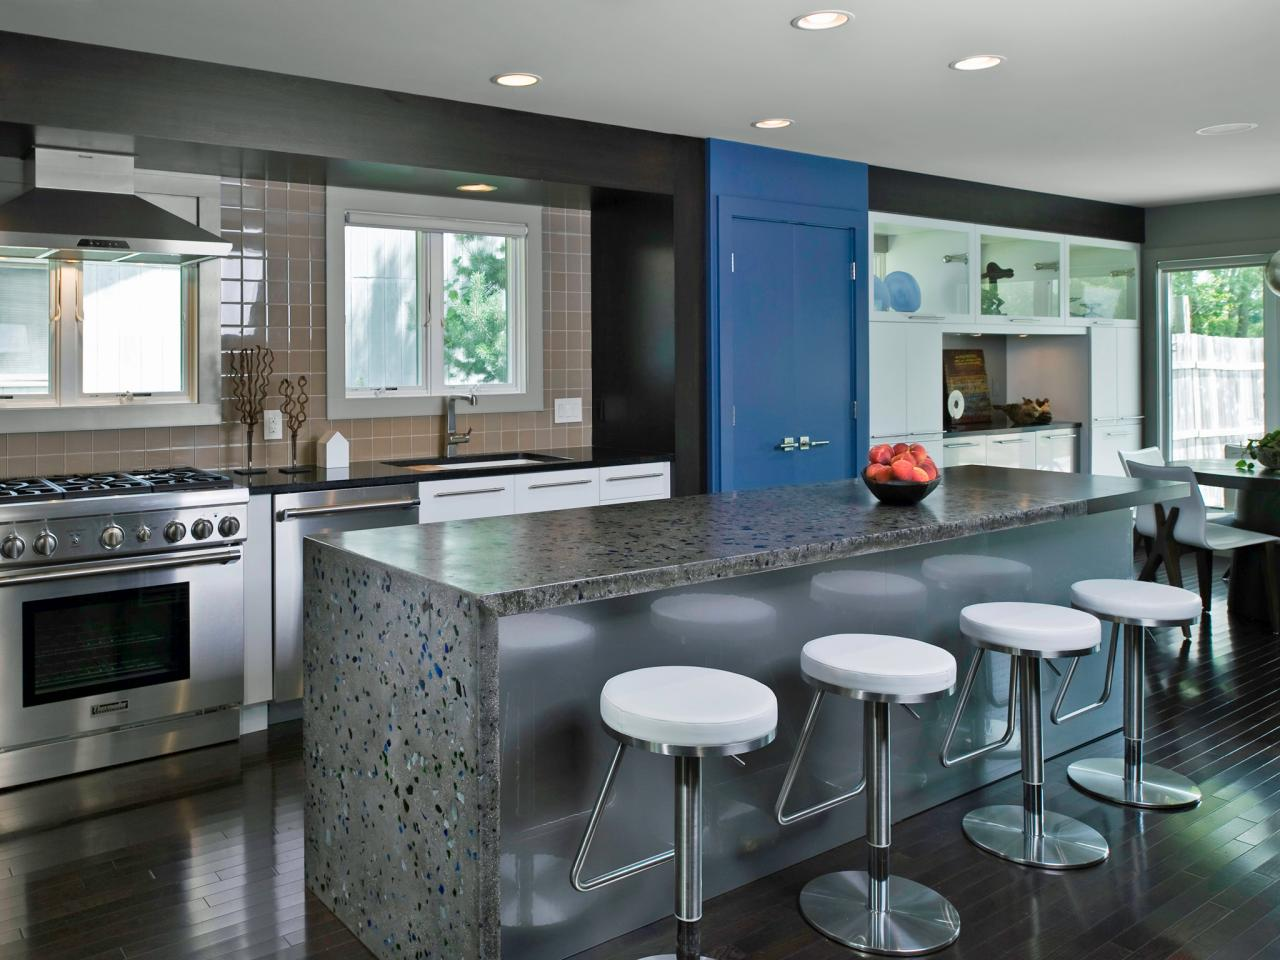 best feng shui colors for kitchen feng shui kitchen paint colors pictures amp ideas from hgtv 9122